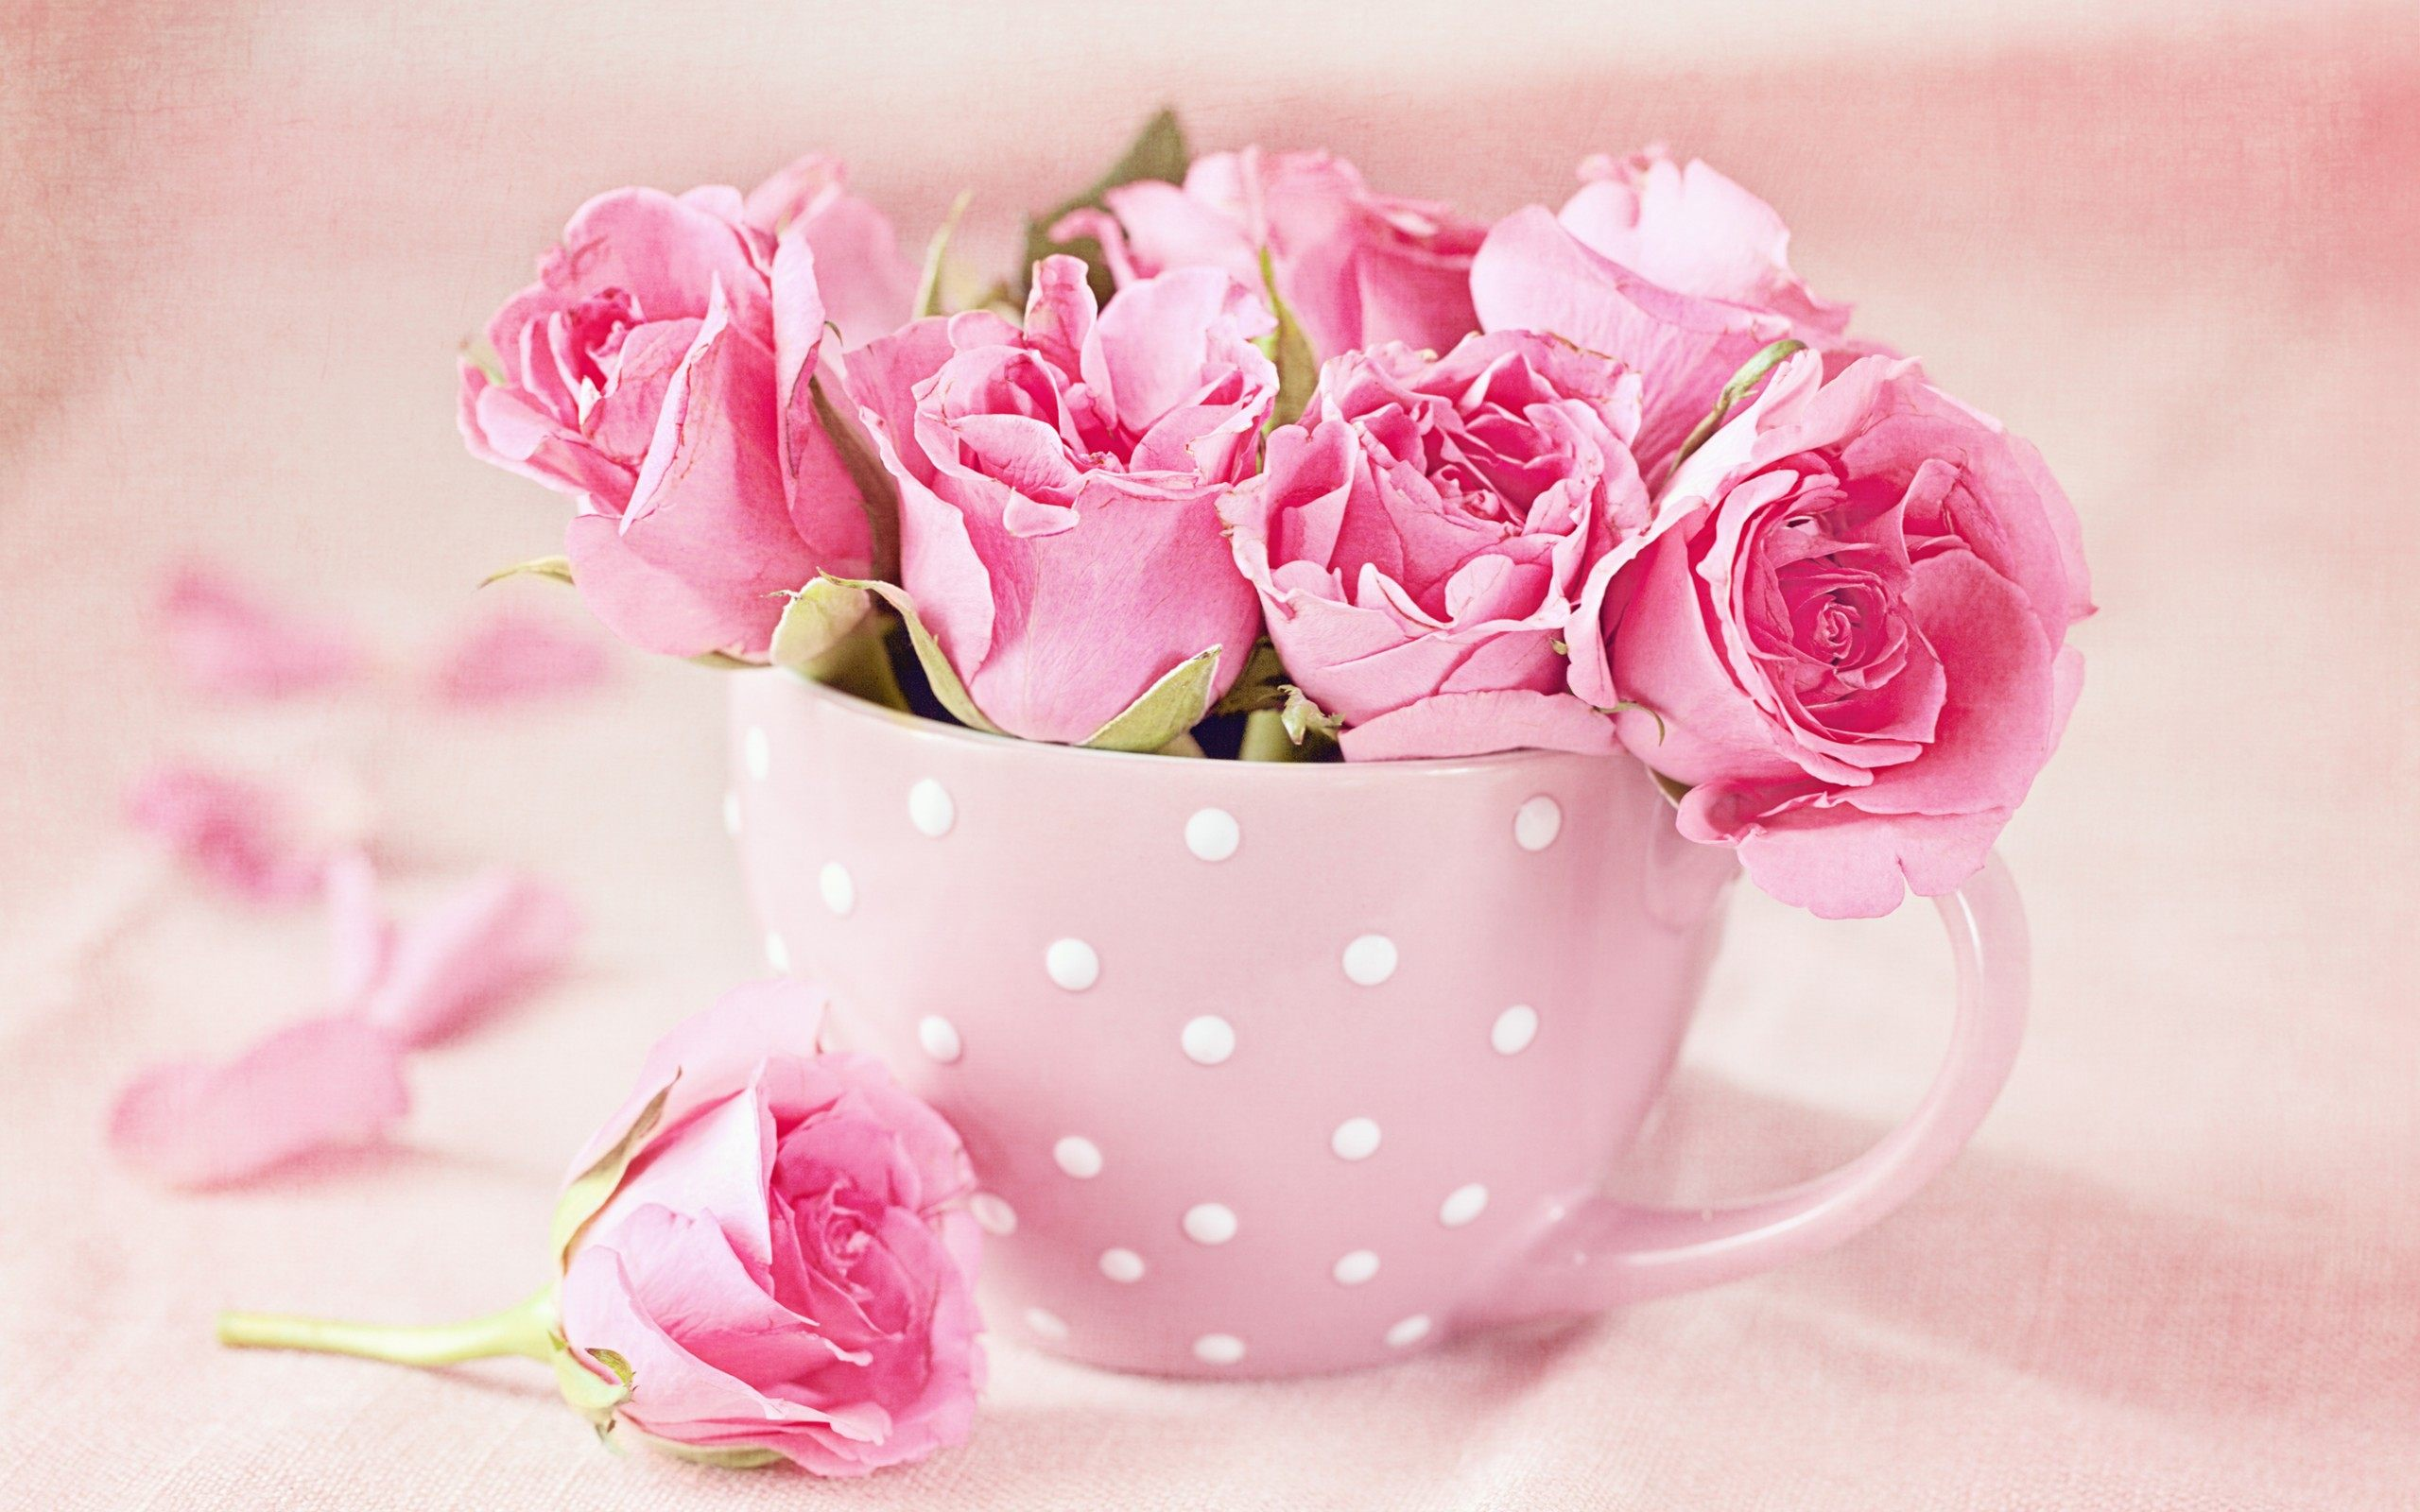 Flower Cup Pink Roses Wallpaper Rose Full Hd For Iphone Pic